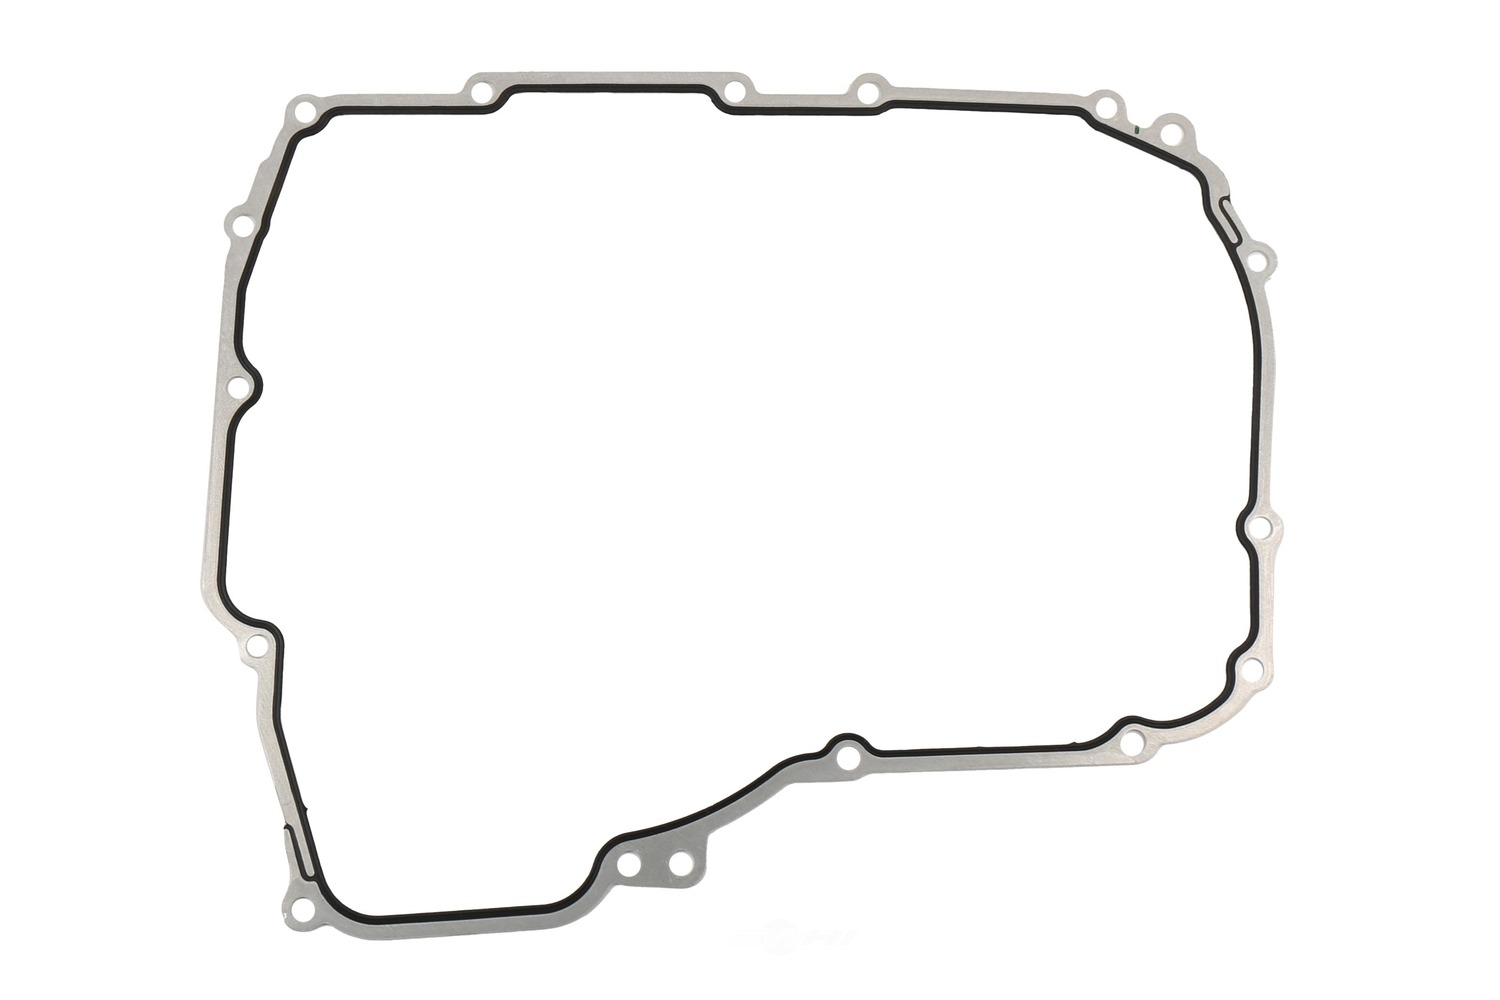 ACDELCO GM ORIGINAL EQUIPMENT - Automatic Transmission Case Gasket (Front) - DCB 24231188